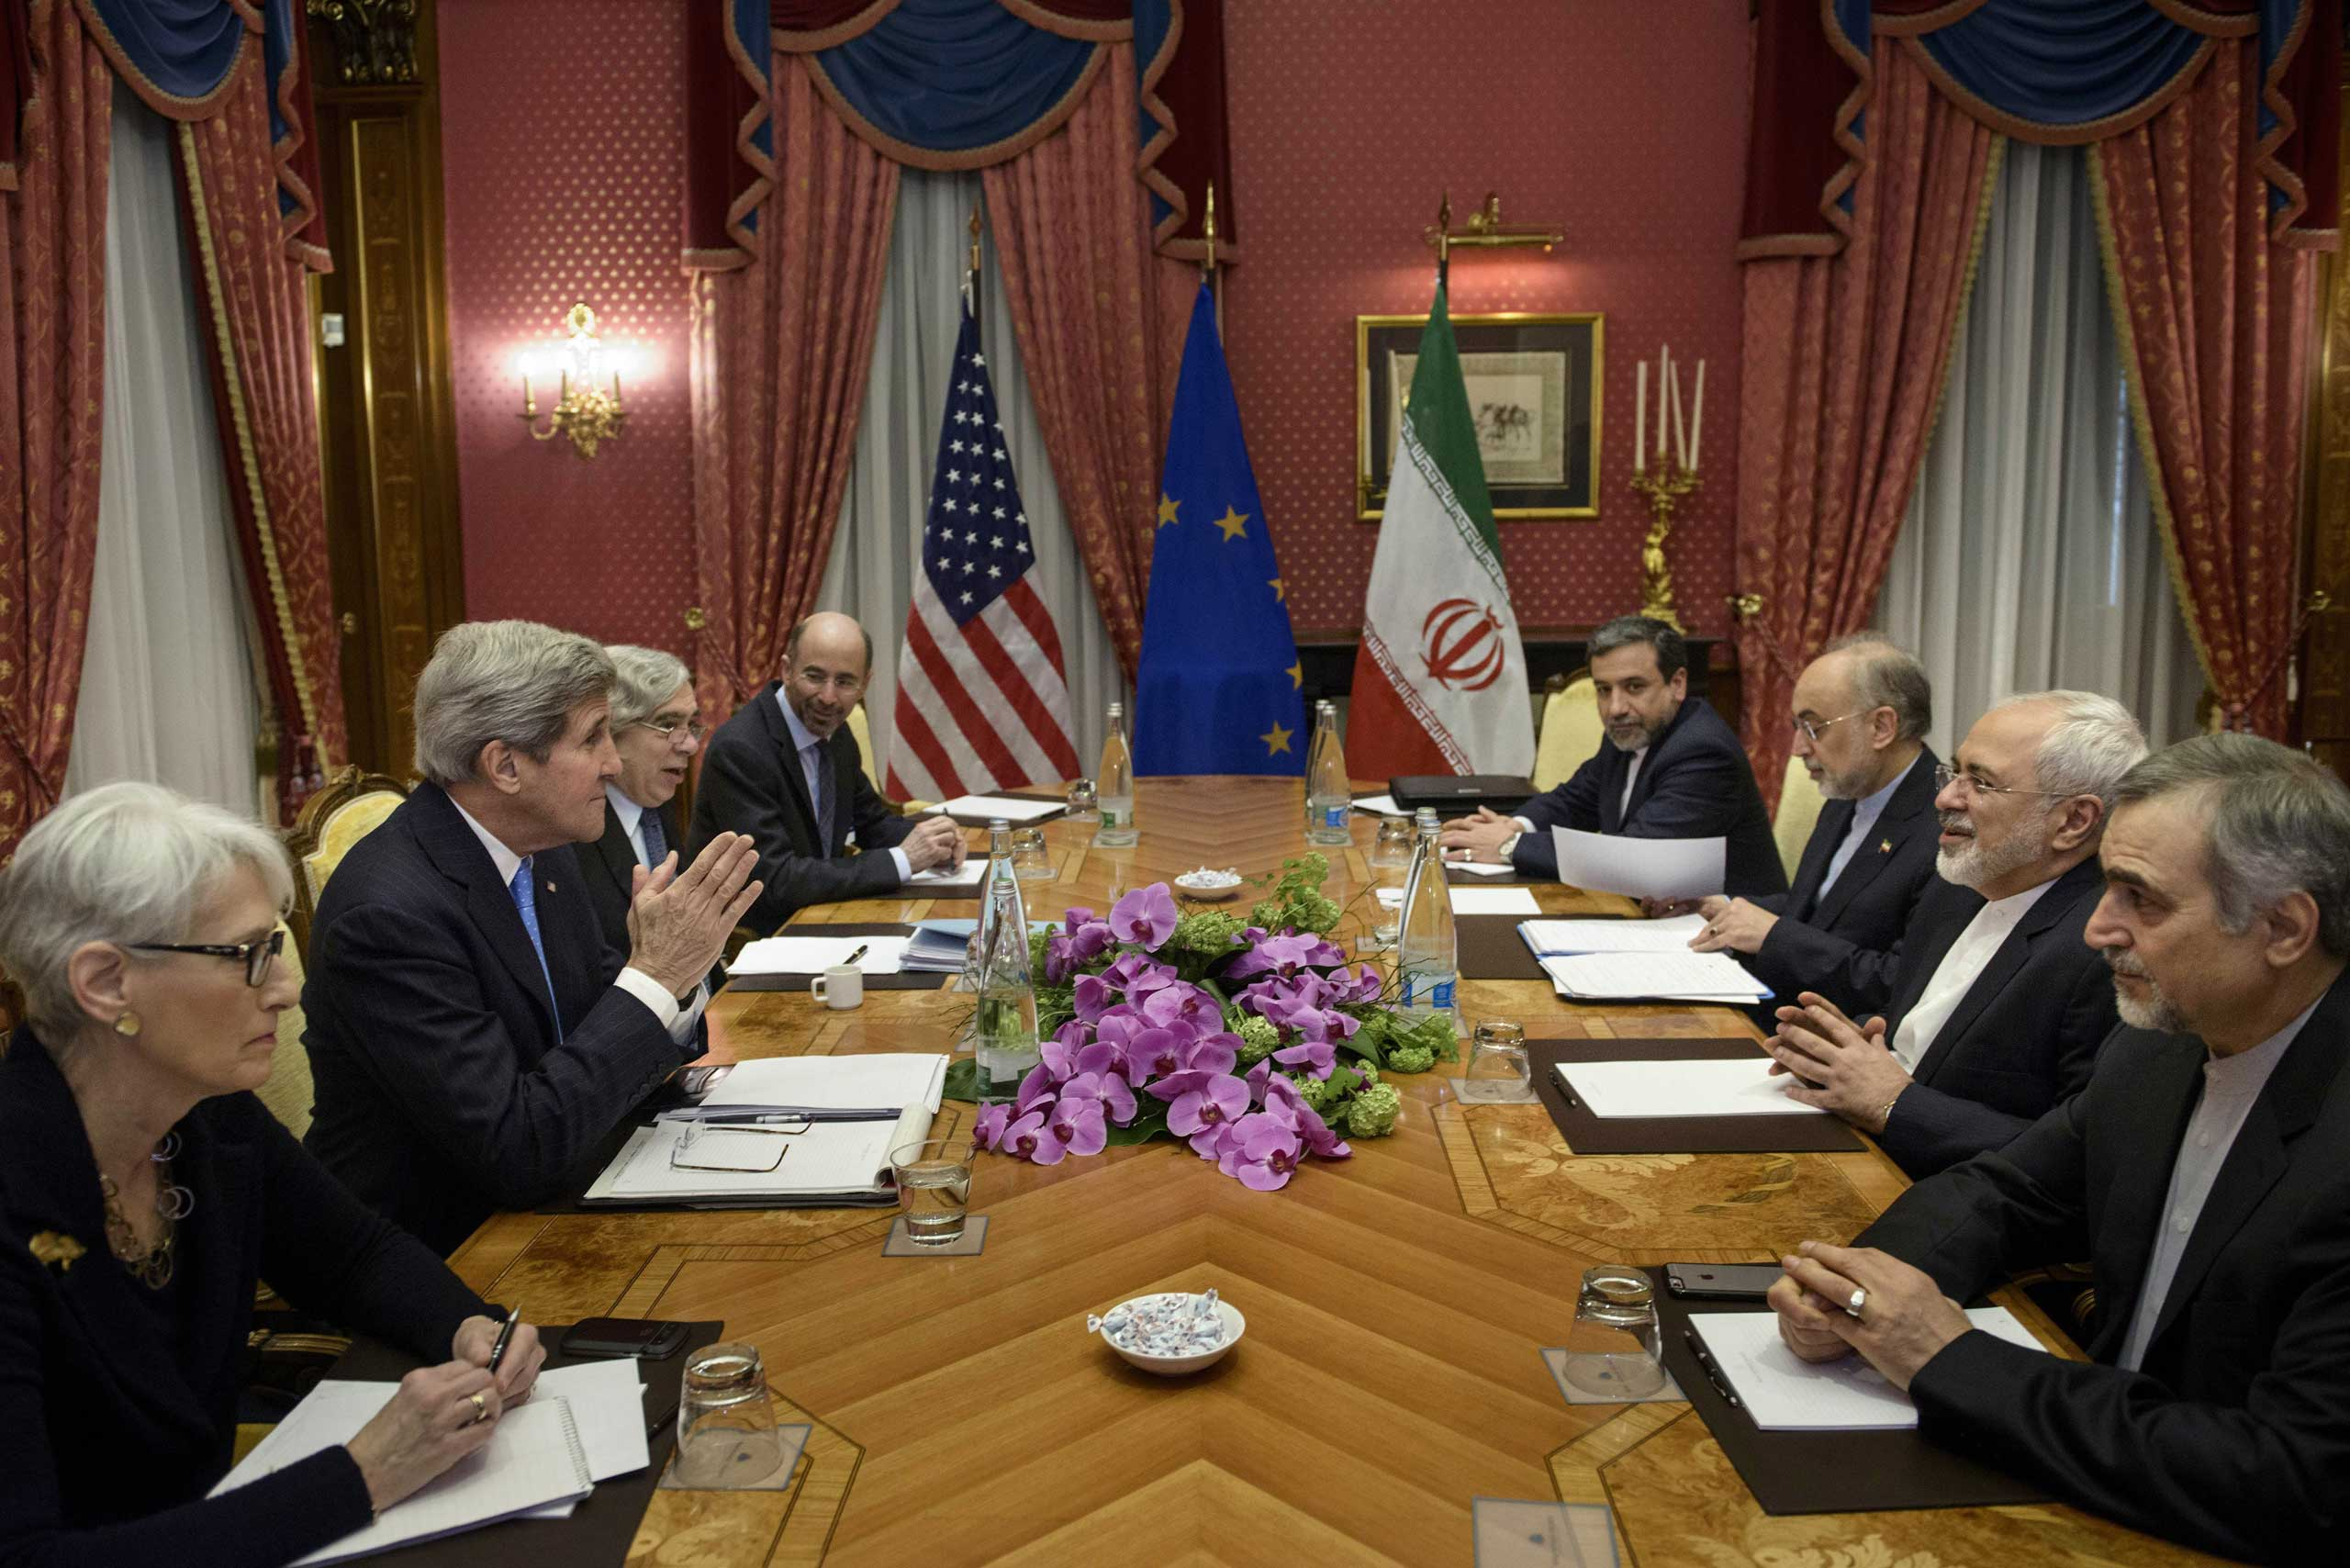 From left, U.S. Under Secretary for Political Affairs Wendy Sherman, U.S. Secretary of State John Kerry, U.S. Secretary of Energy Ernest Moniz, Robert Malley, member of the U.S. National Security Council, Iranian Deputy Foreign Minister Abbas Araghchi, Head of Iran Atomic Energy Organization Ali Akbar Salehi, Iranian Foreign Minister Javad Zarif and Hossein Fereydoon, special assistant to Iranian president, wait to start a meeting at the Beau Rivage Palace Hotel in Lausanne, Switzerland, March 29, 2015.